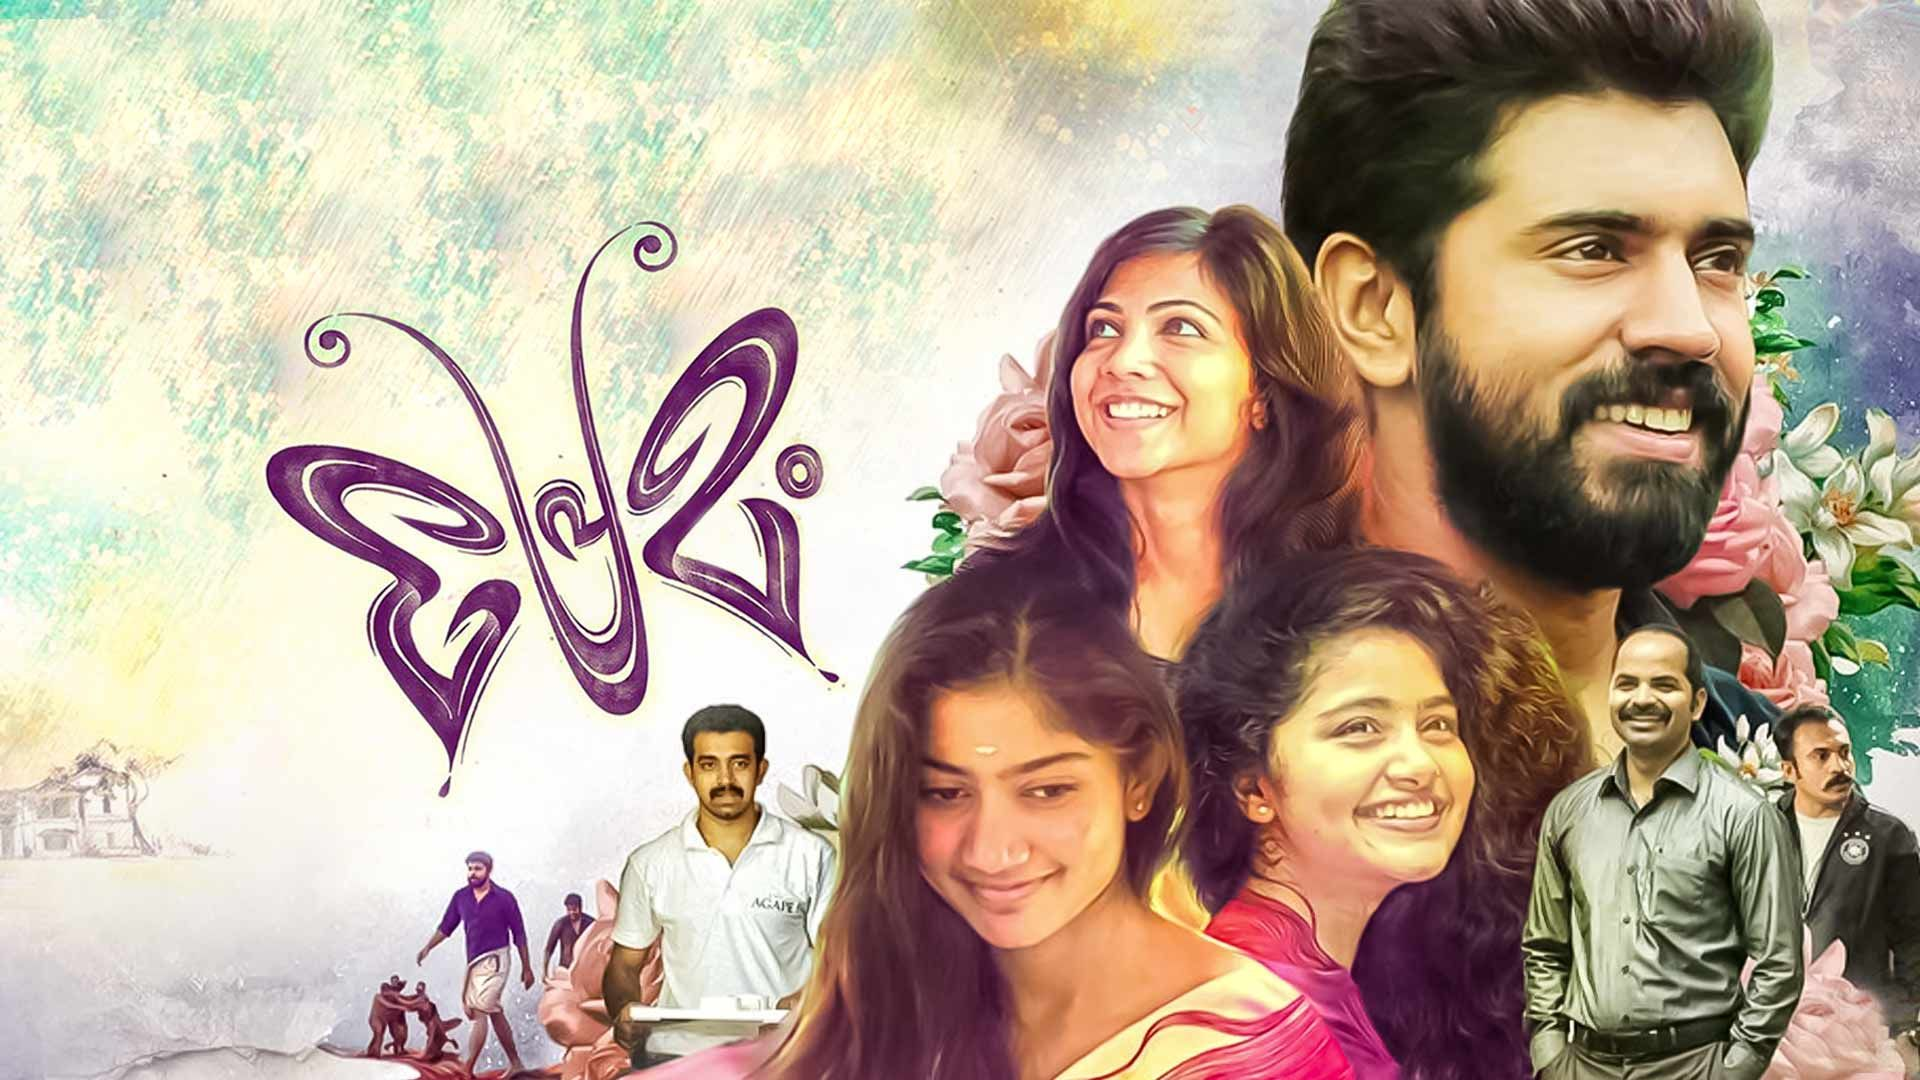 Watch premam full movie online in hd for free on hotstar ccuart Gallery